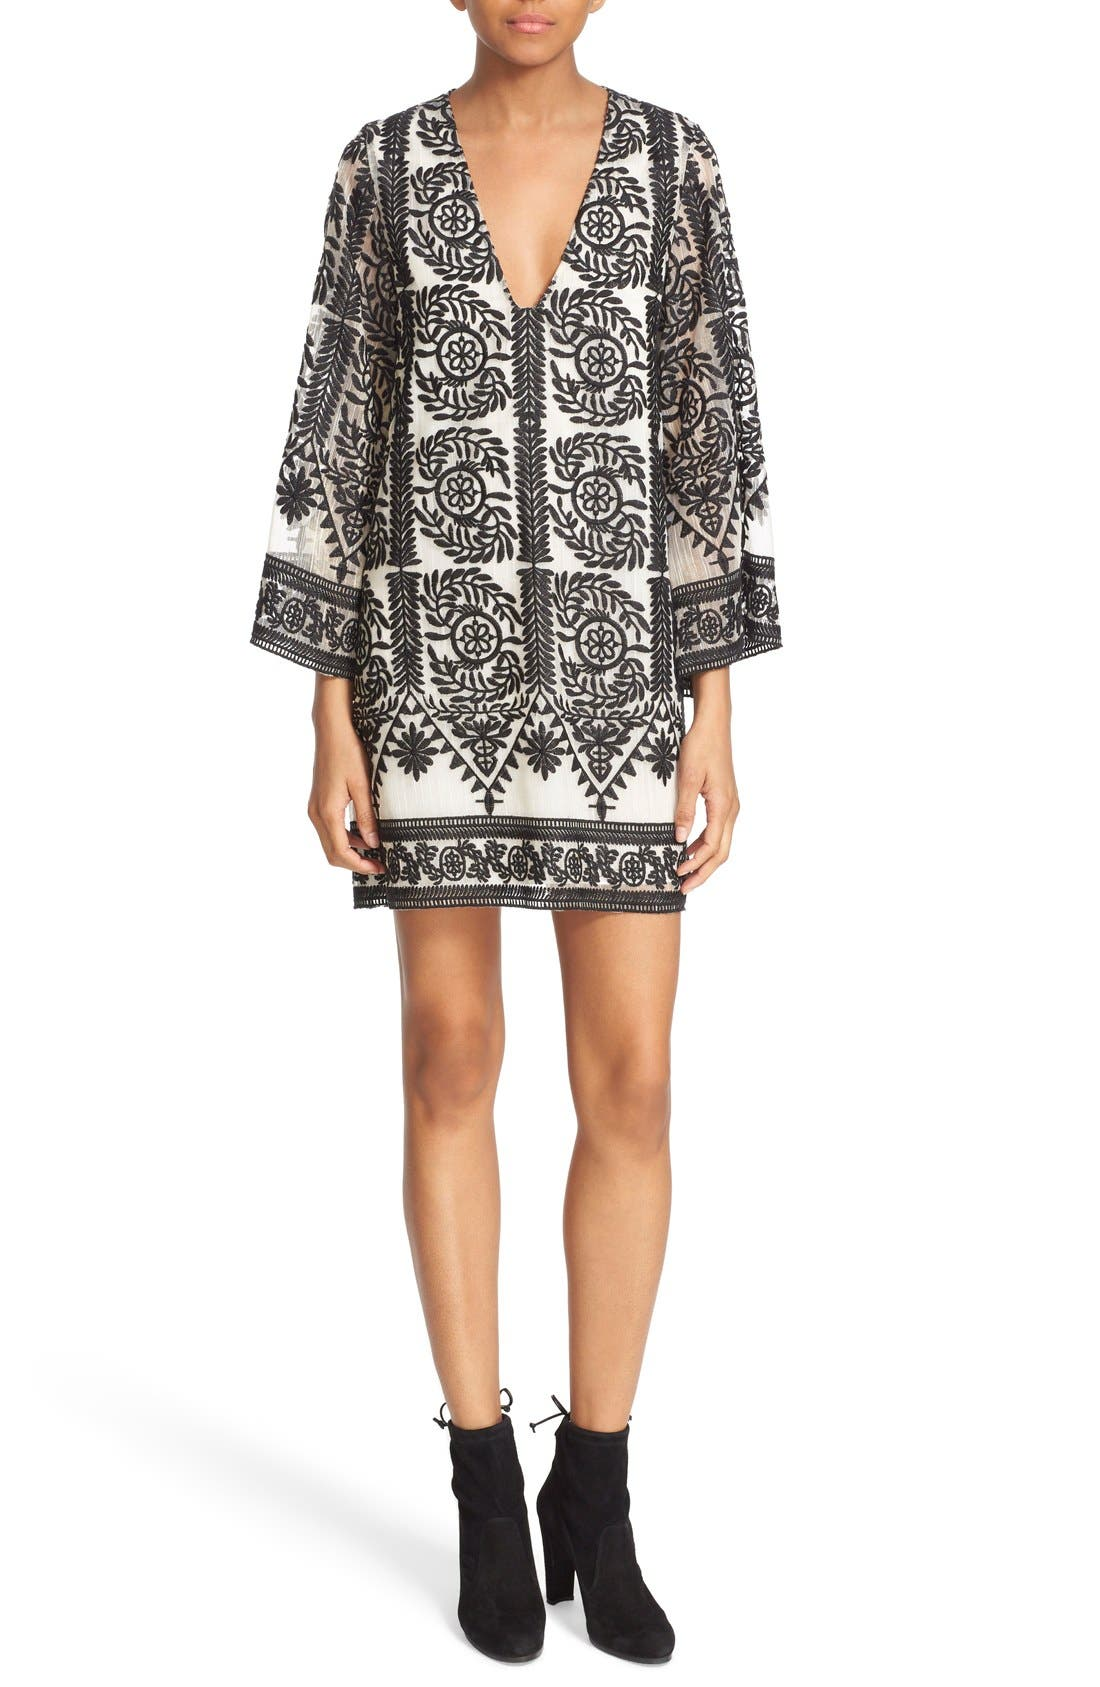 ALICE + OLIVIA, 'Katt' Print V-Neck Caftan Minidress, Main thumbnail 1, color, 001